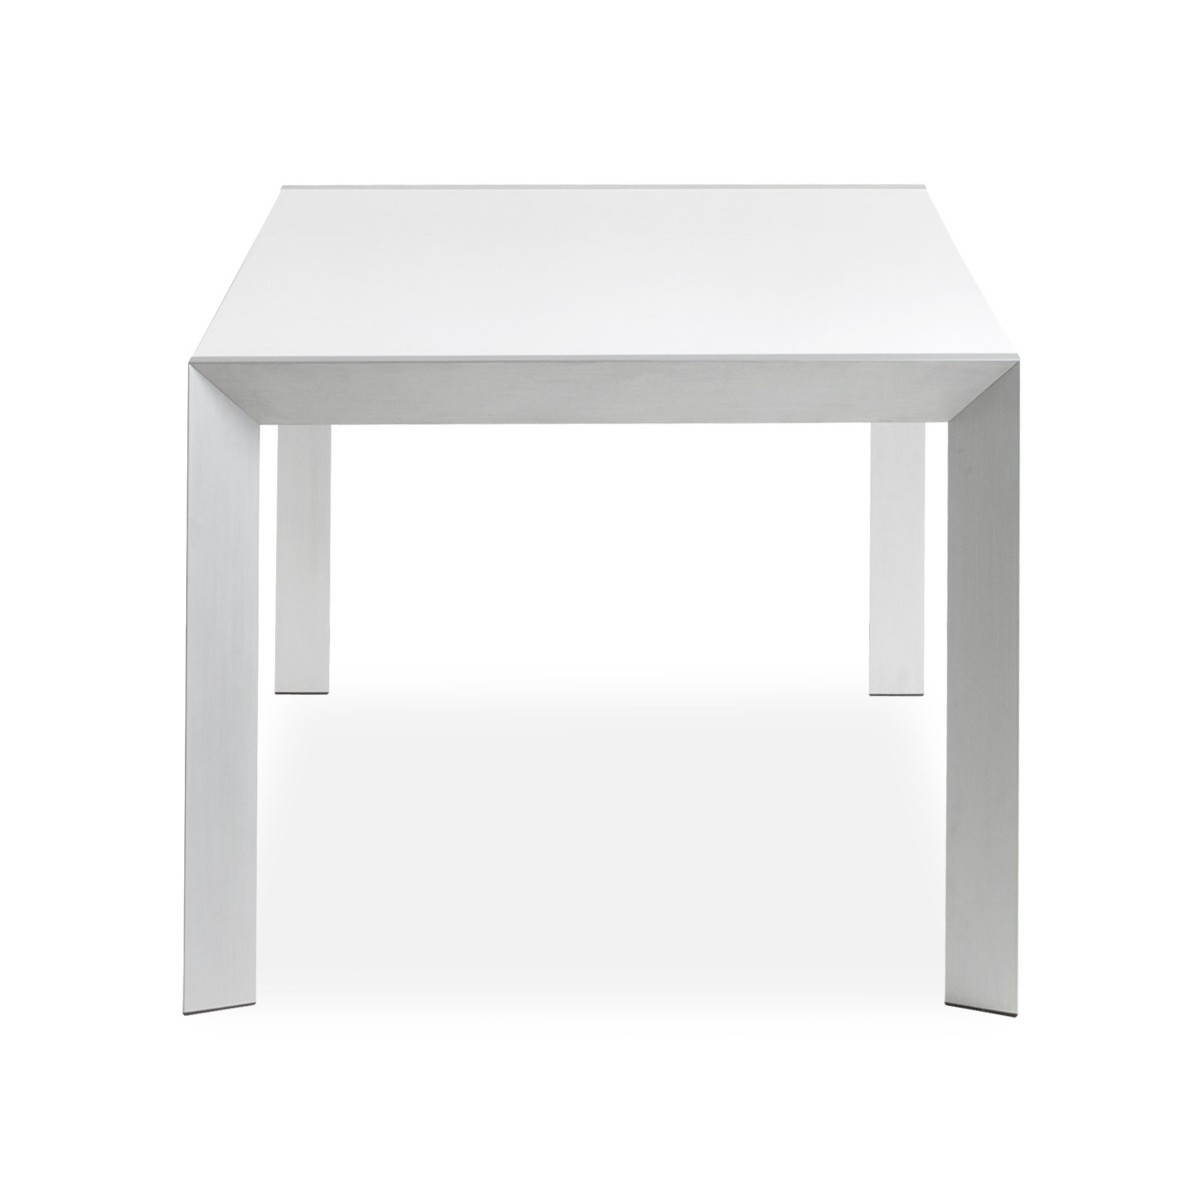 Table basse design bois blanc for Table rectangulaire a rallonge